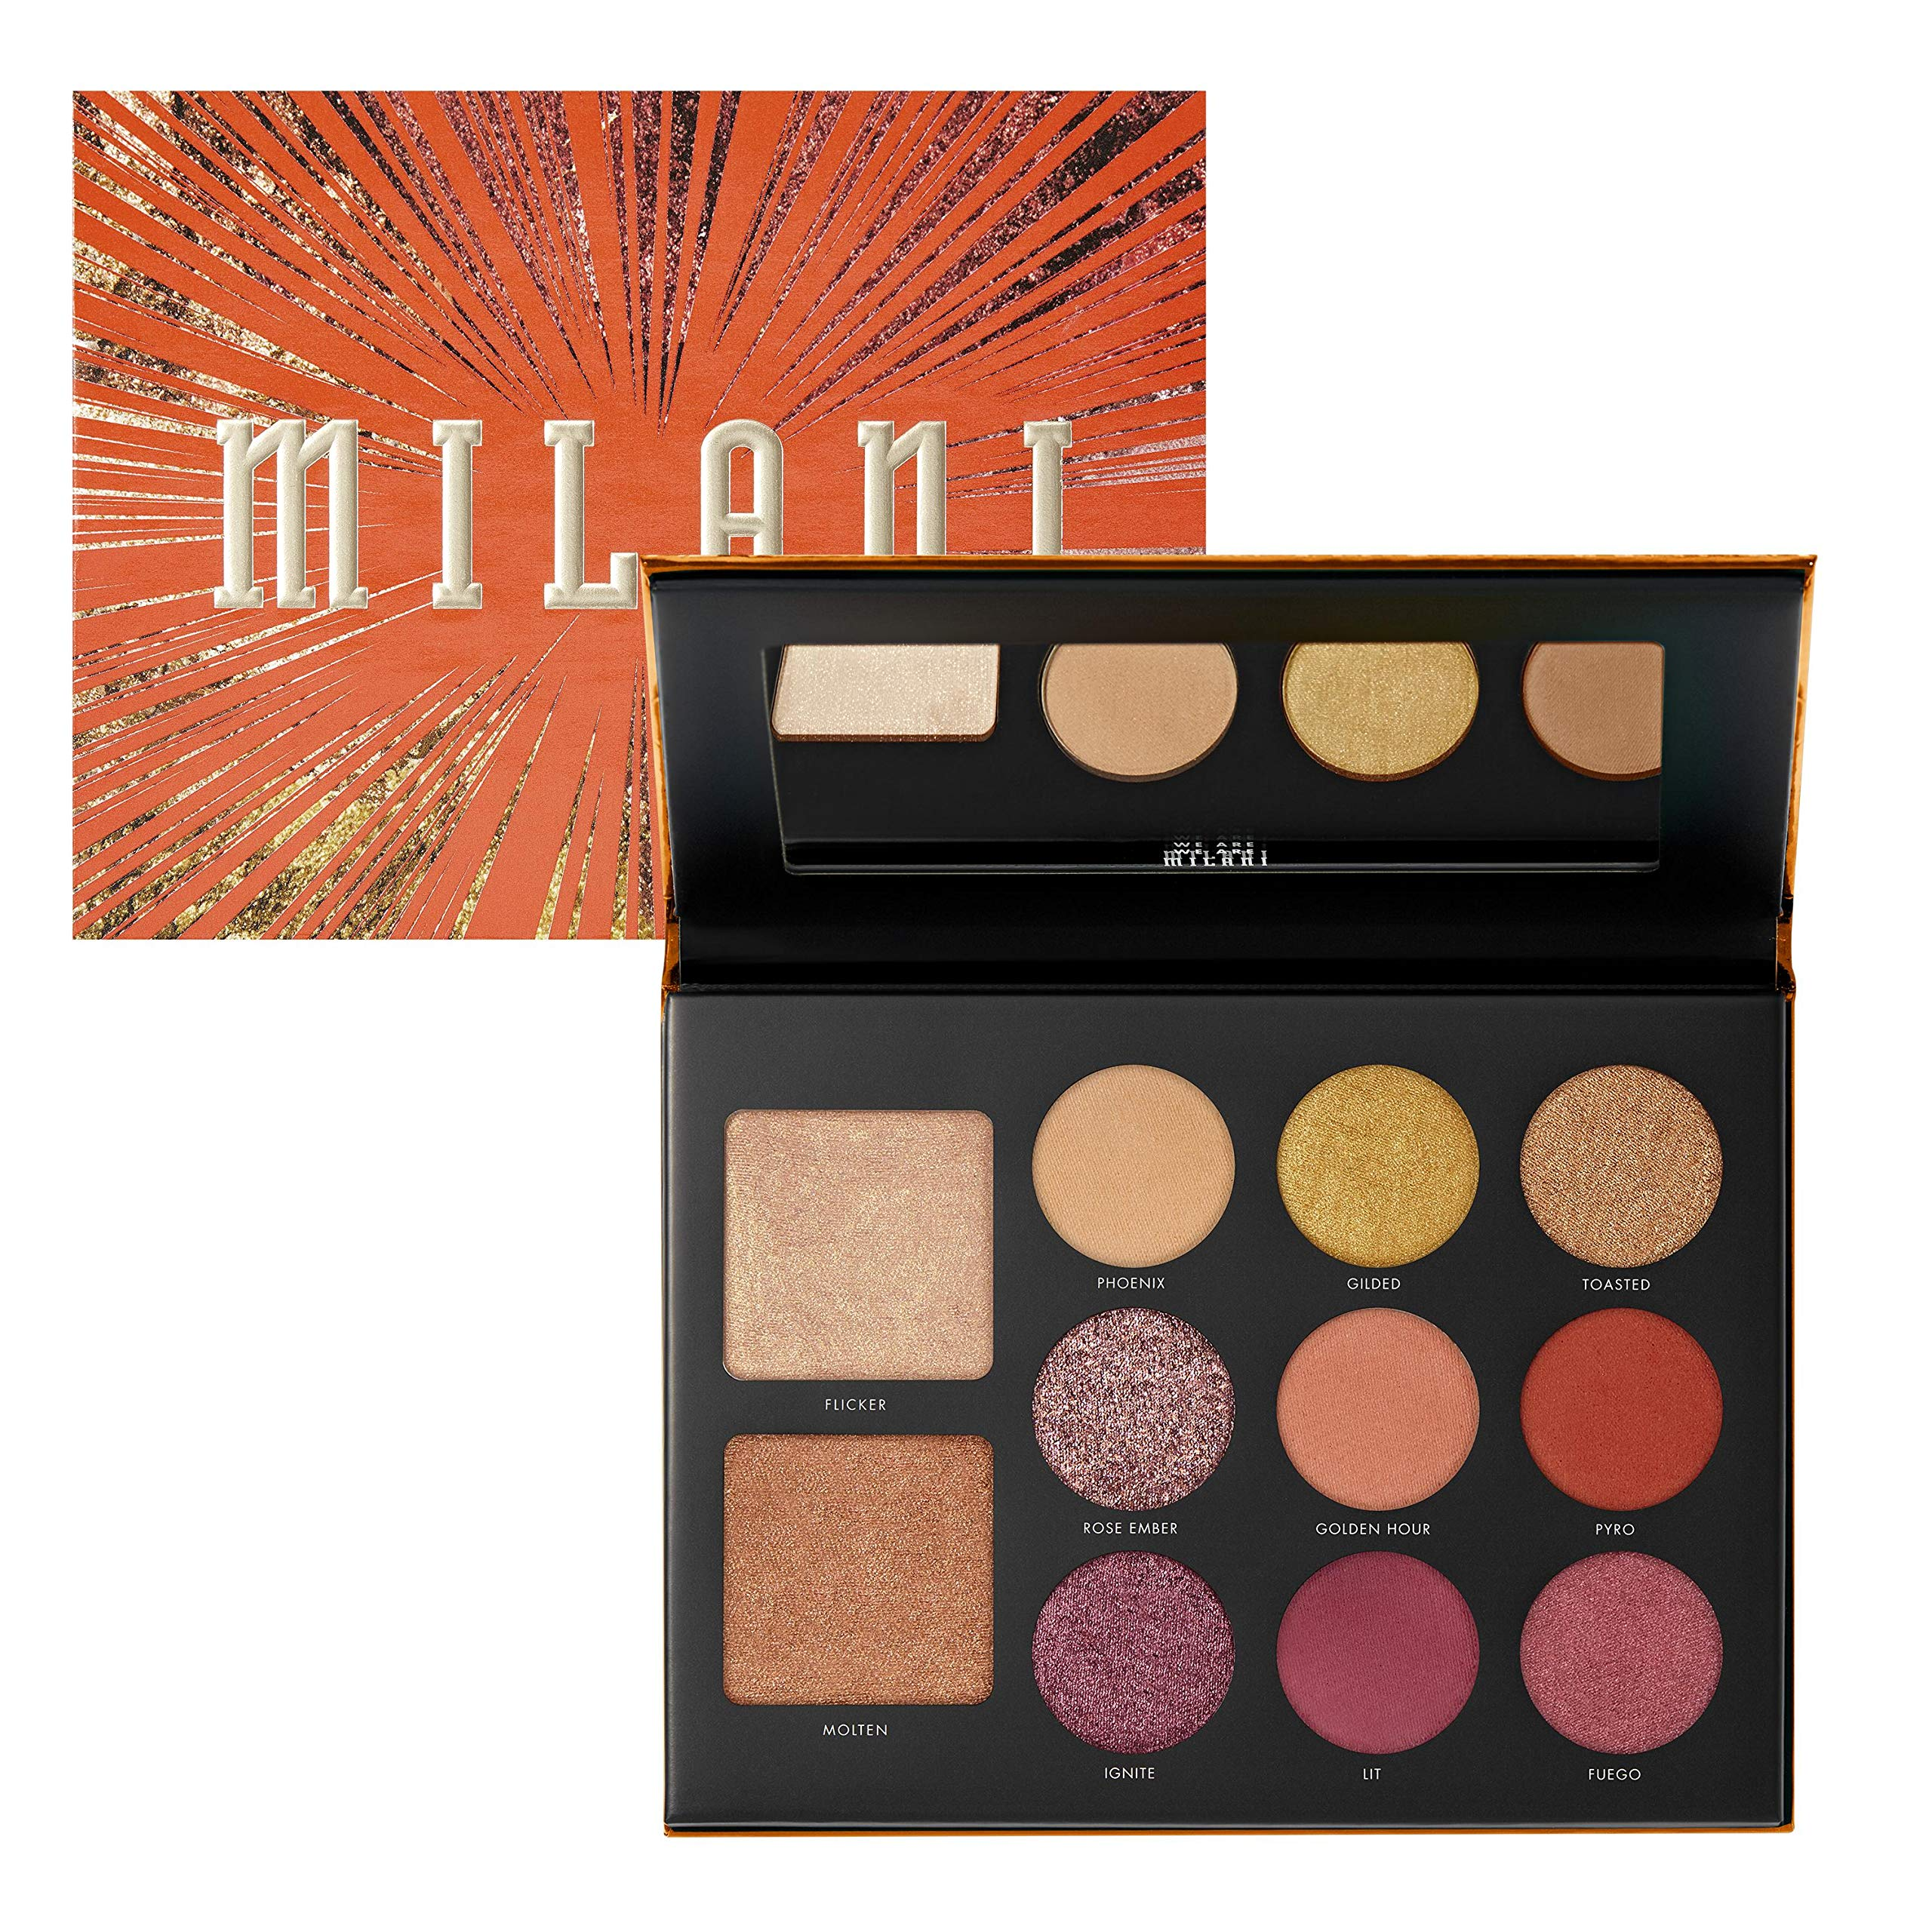 Milani Gilded Ember Hyper-Pigmented Face & Eyeshadow Palette (5.7 Oz.) 9 Cruelty-Free Eyeshadows & 2 Highlighters - Enhance Eyes & Contour Face with Matte & Shimmer Colors